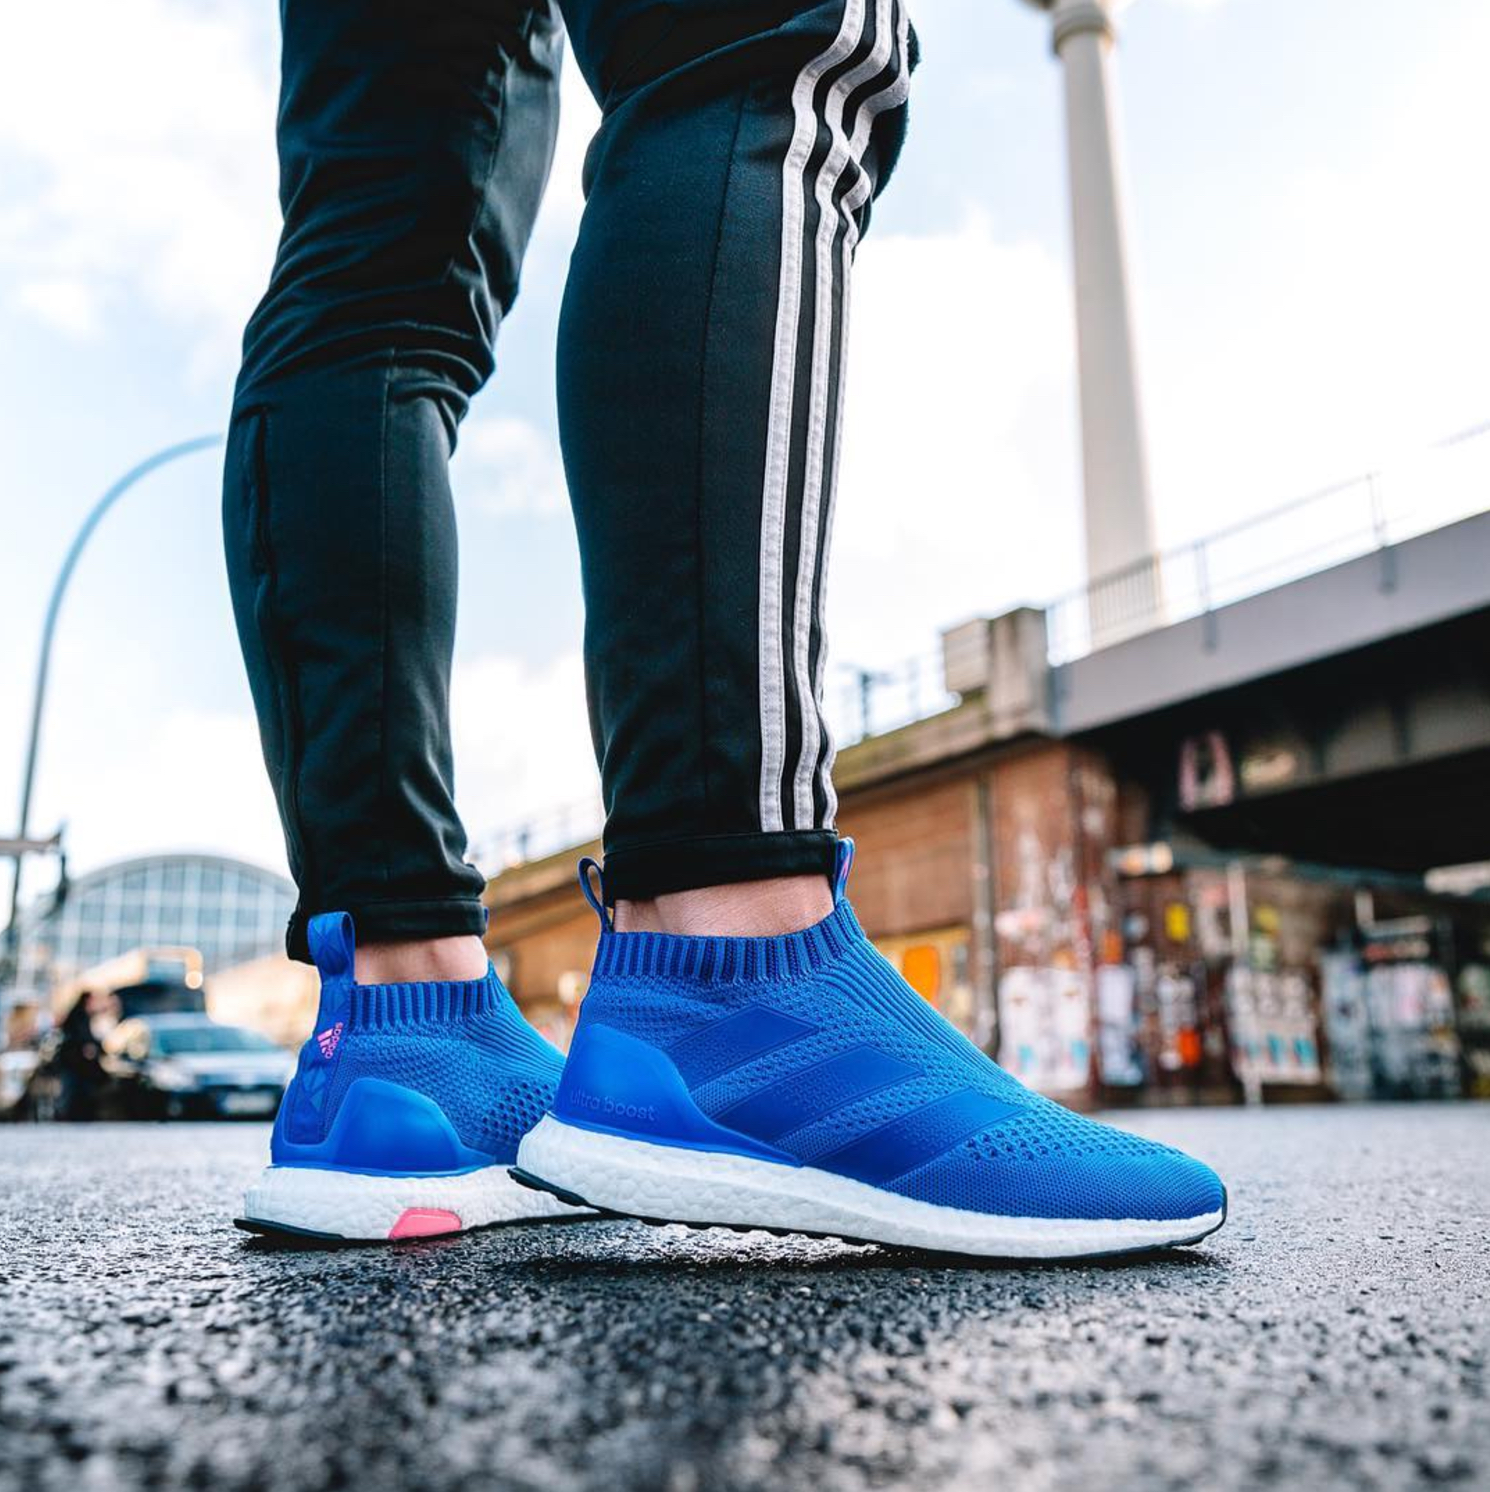 adidas Launches a Blue Blast ACE 16+ UltraBoost for New York